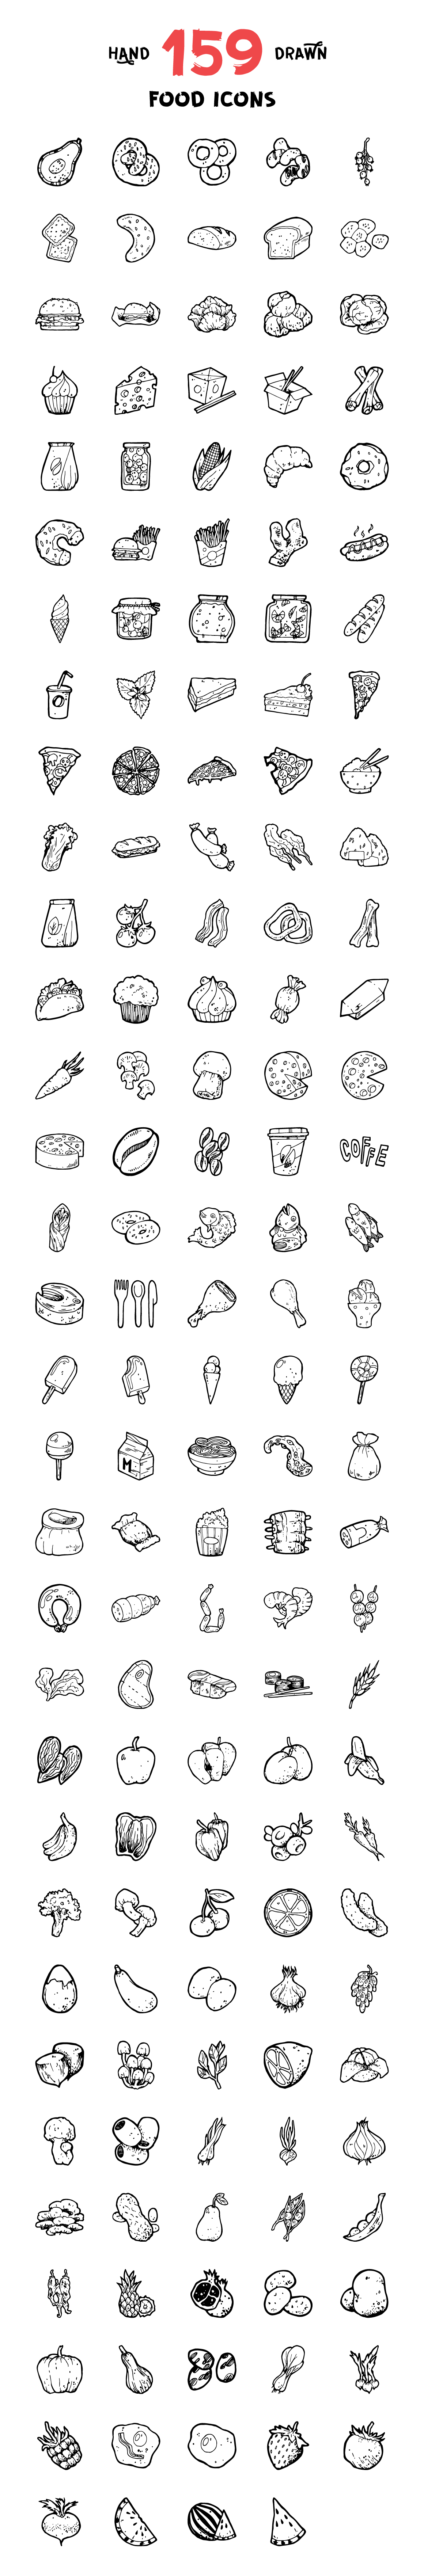 Handdrawn food icons preview cm 1160x7050px